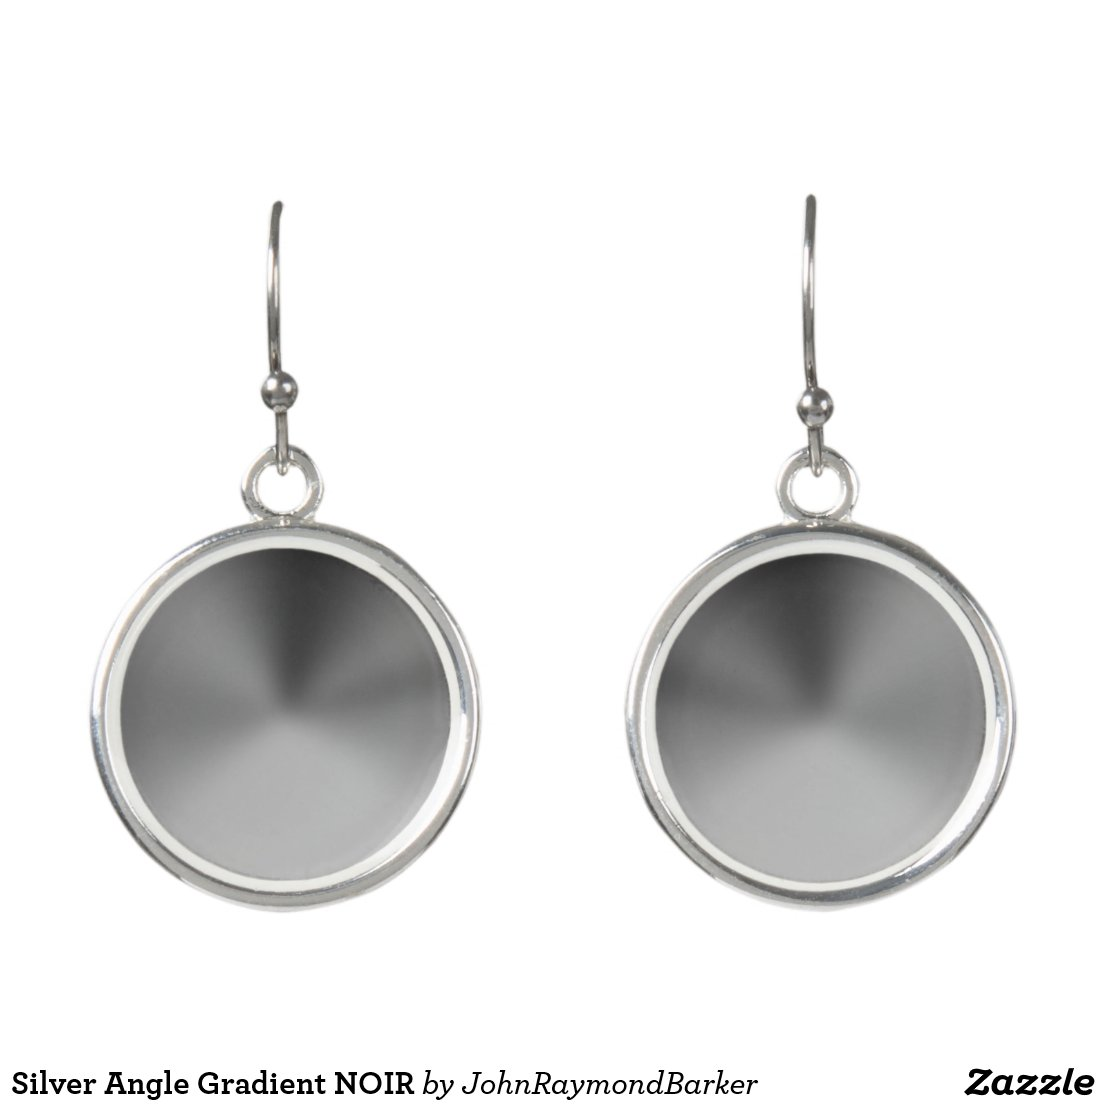 Silver Angle Gradient NOIR Earrings